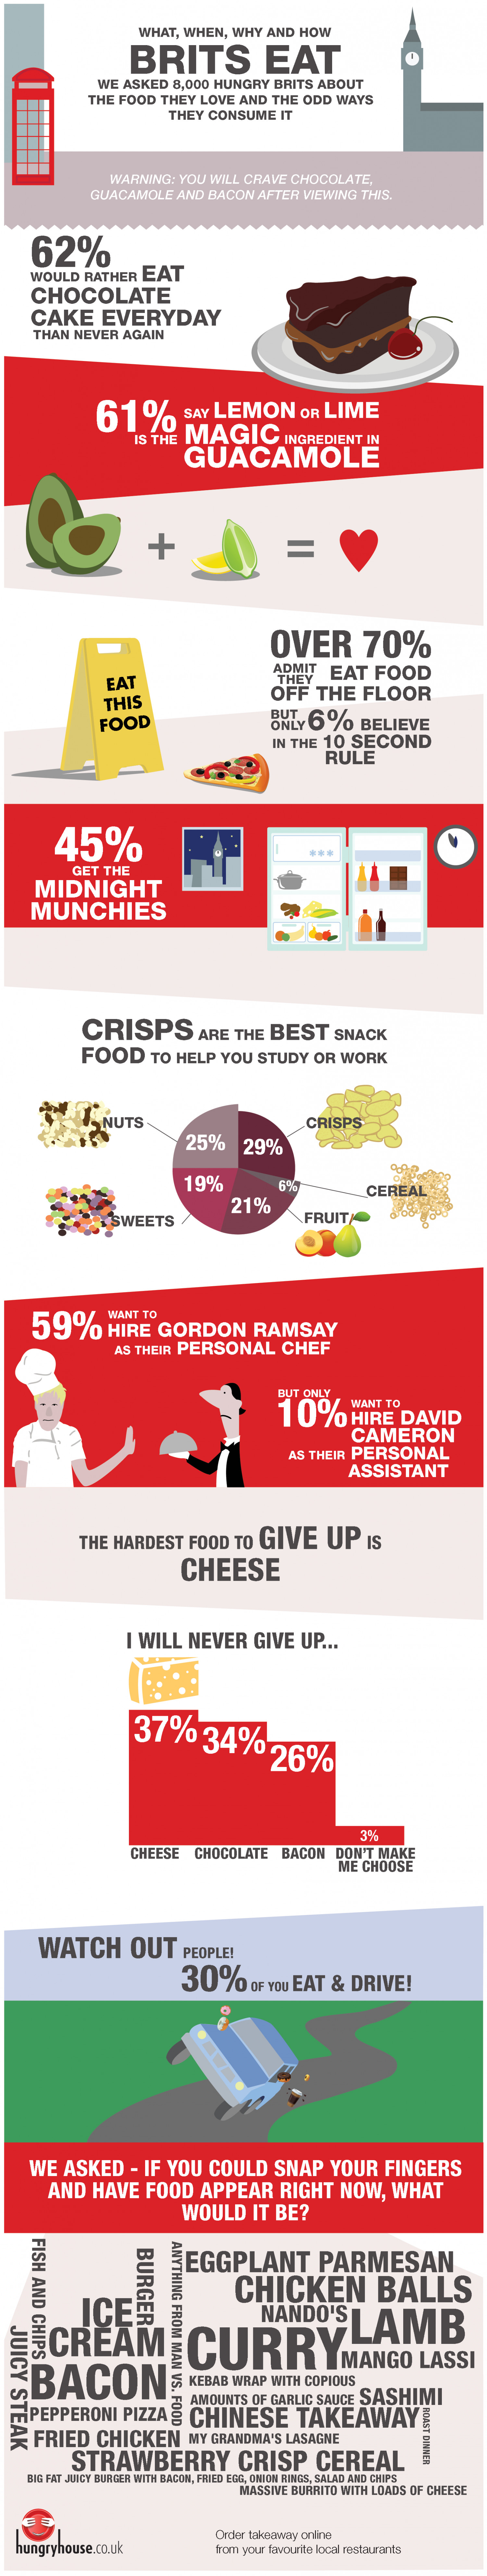 British Eating Habits Infographic